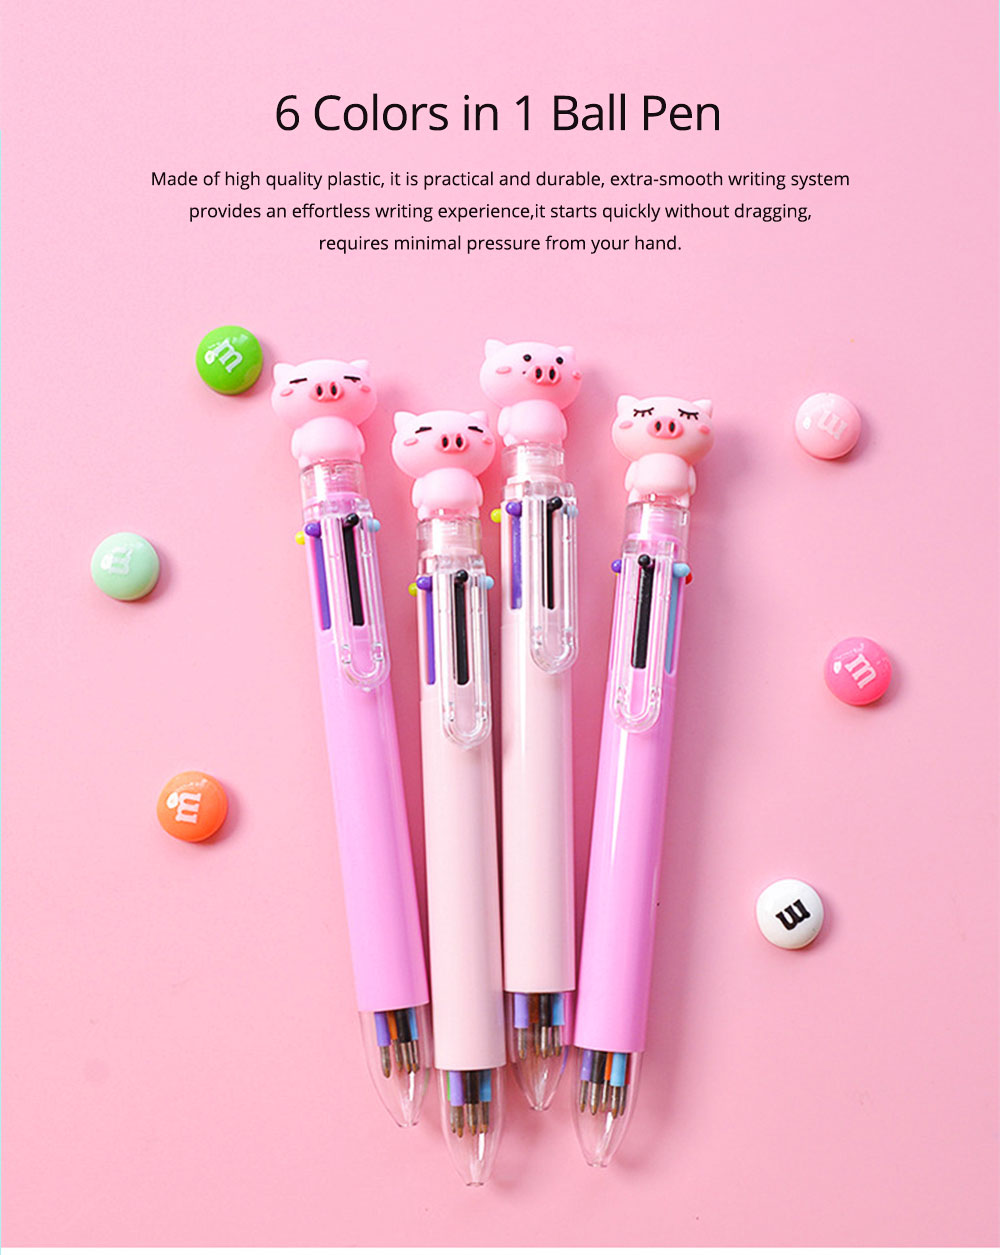 6 Colors in 1 Ball Pens Multi-colors Cute Ballpoint Pen for Students School Office  Stationery Gift 0